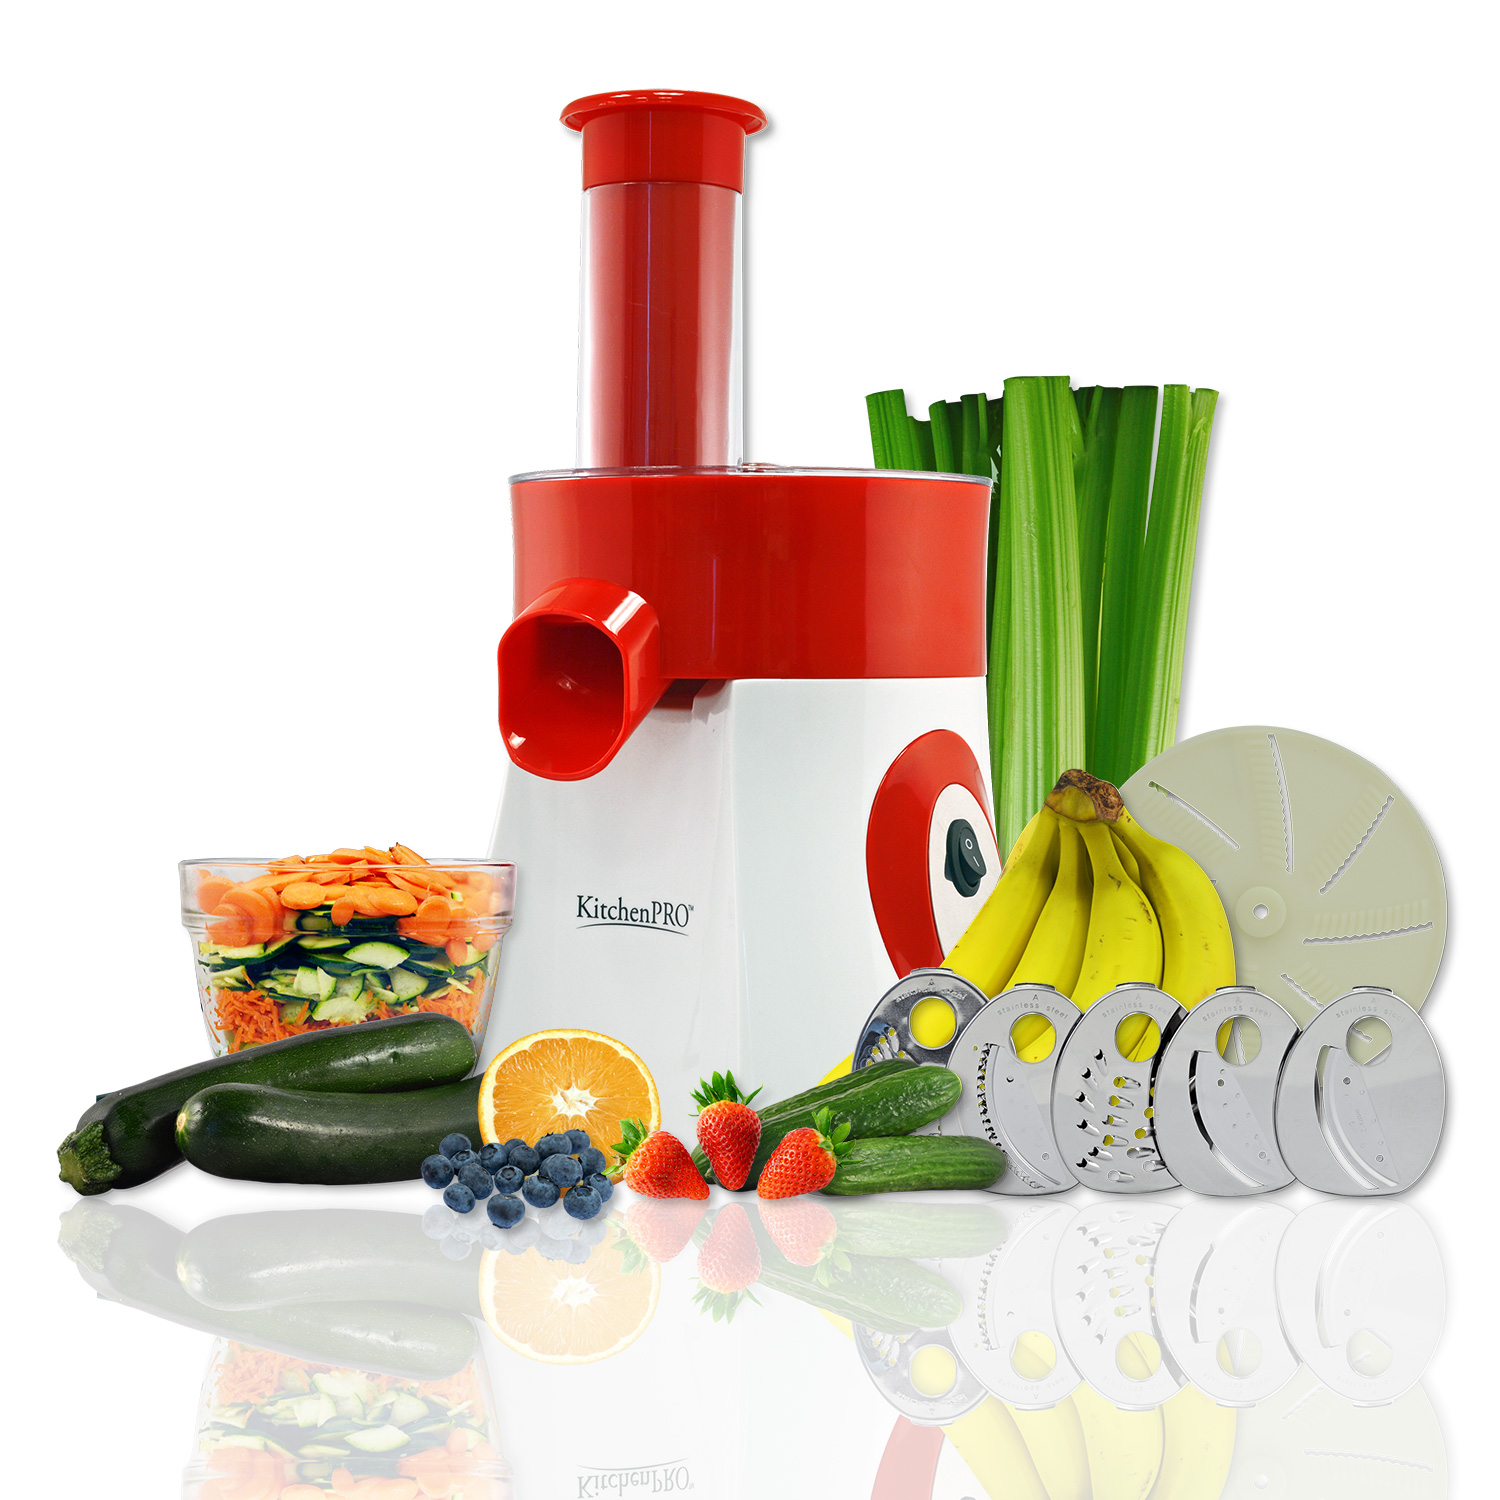 HH111-Salad_and_Frozen_Dessert_Maker_composition01.jpg